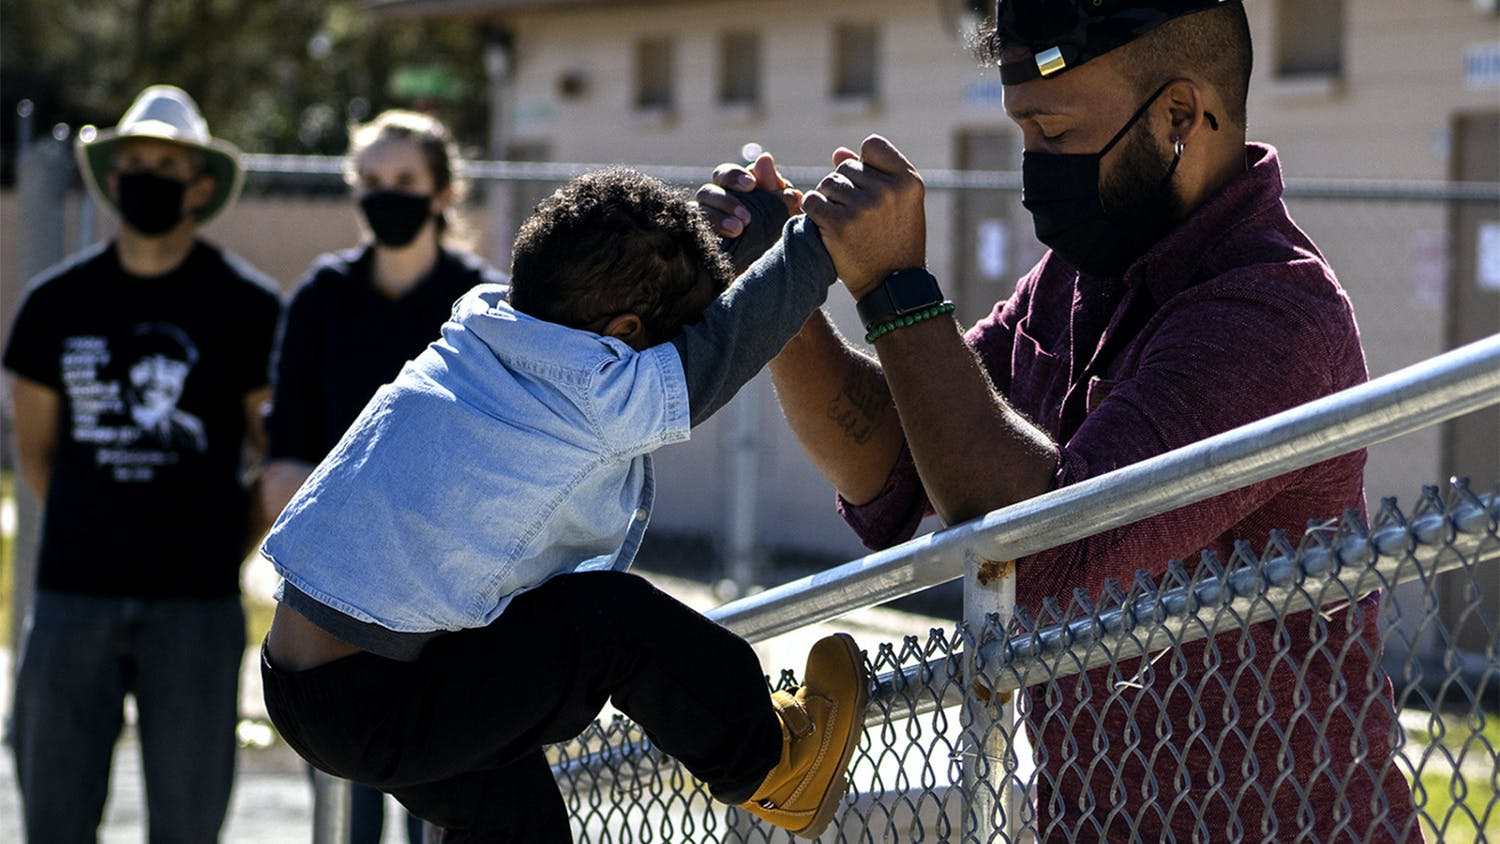 "Ryan Hope Travis helps his 2-year-old son, Rezen Hope Travis, climb a fence at the King Celebration at Citizens Field on Monday, Jan. 18, 2021. Ryan Hope Travis said it was the first Martin Luther King Jr. Day celebration Rezen was old enough to understand. ""Him knowing his history is the foundation of him being able to grow,"" he said."